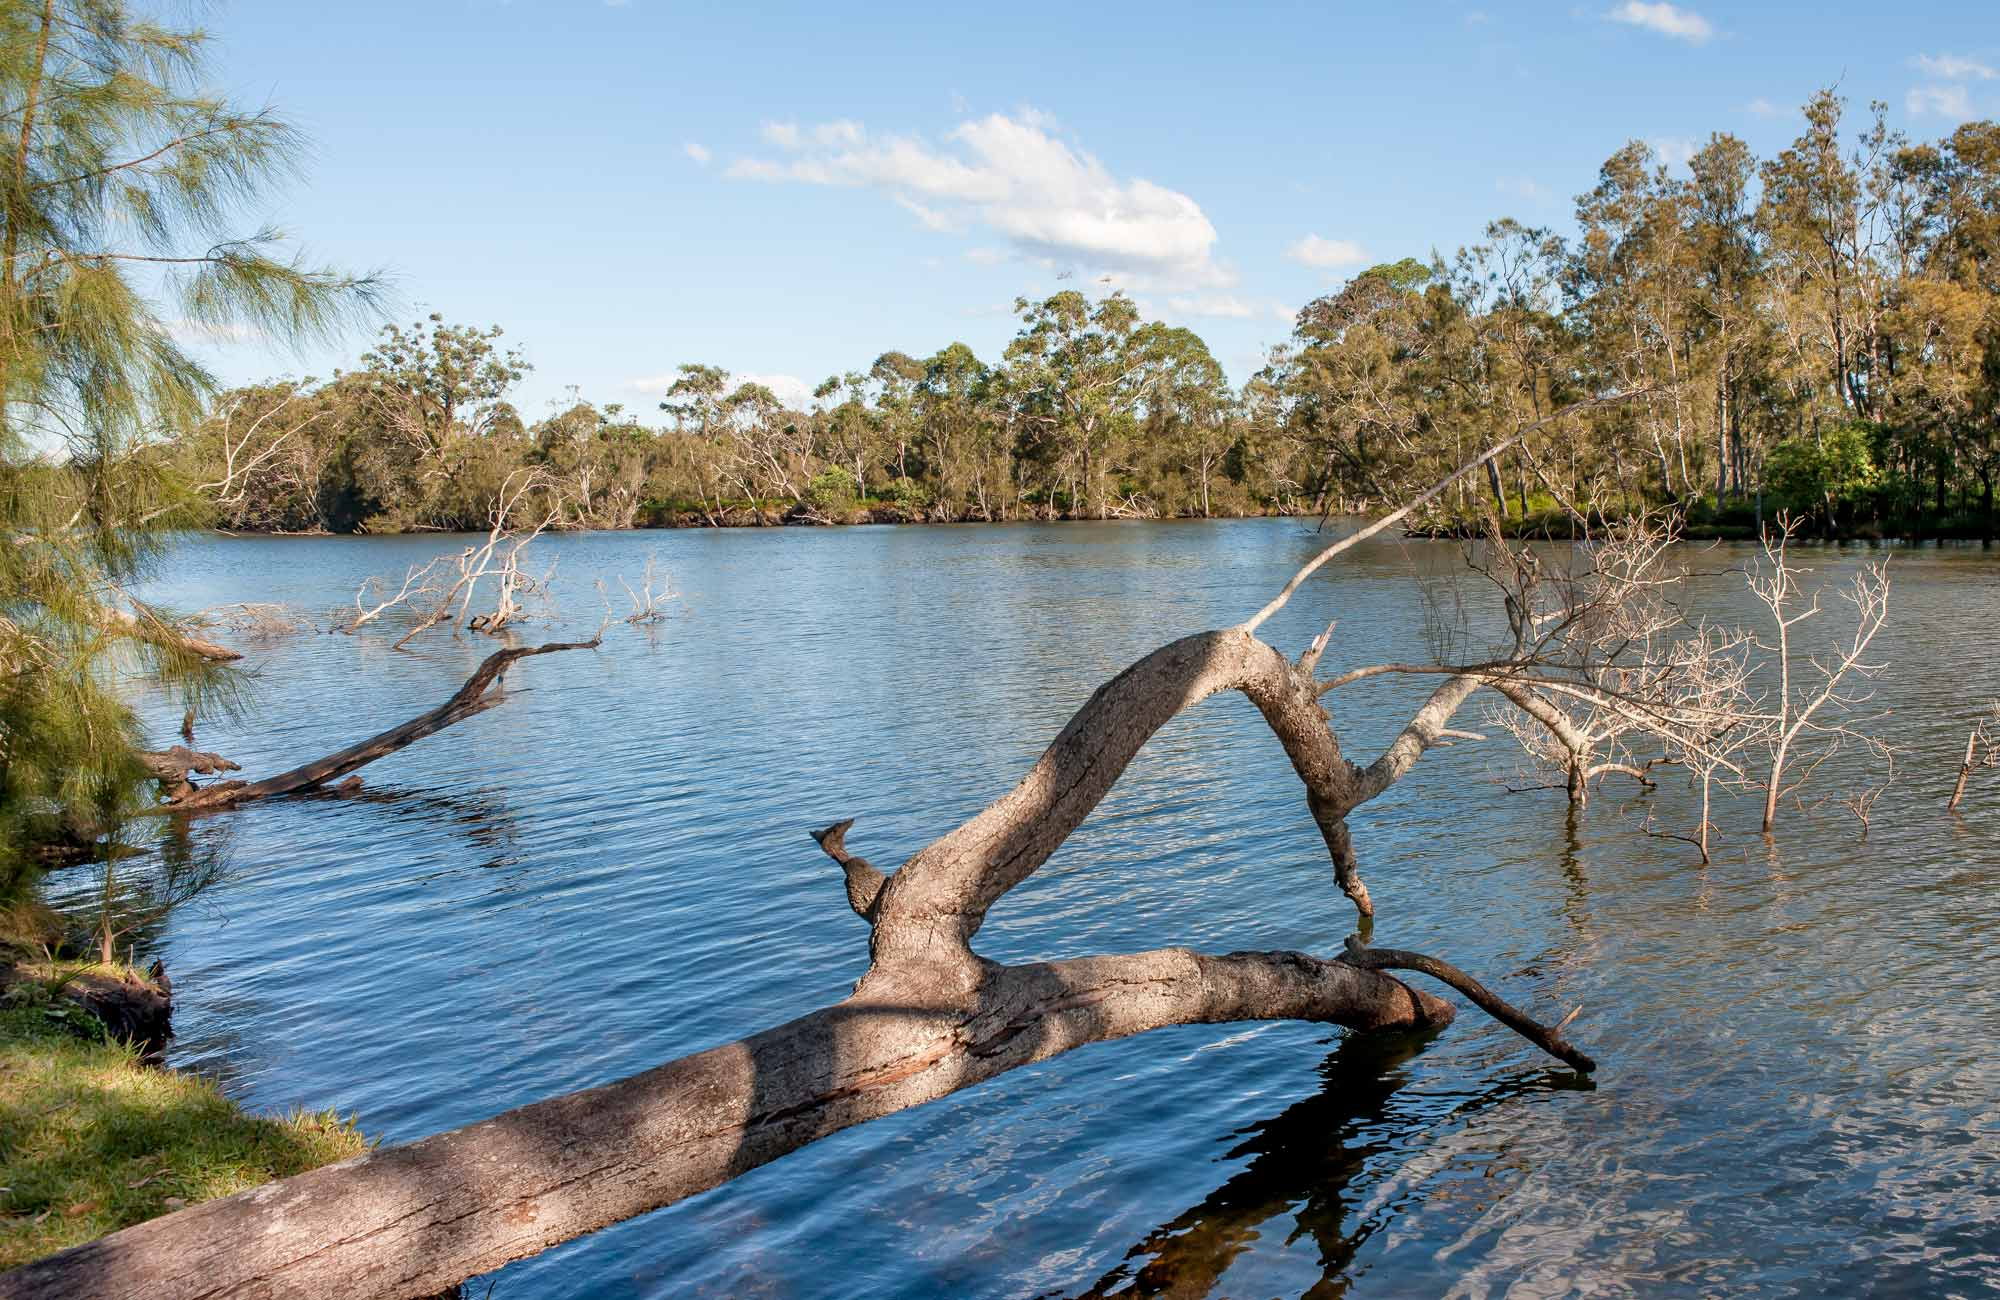 Wandandian Creek, Corramy Regional Park. Photo: Michael van Ewijk